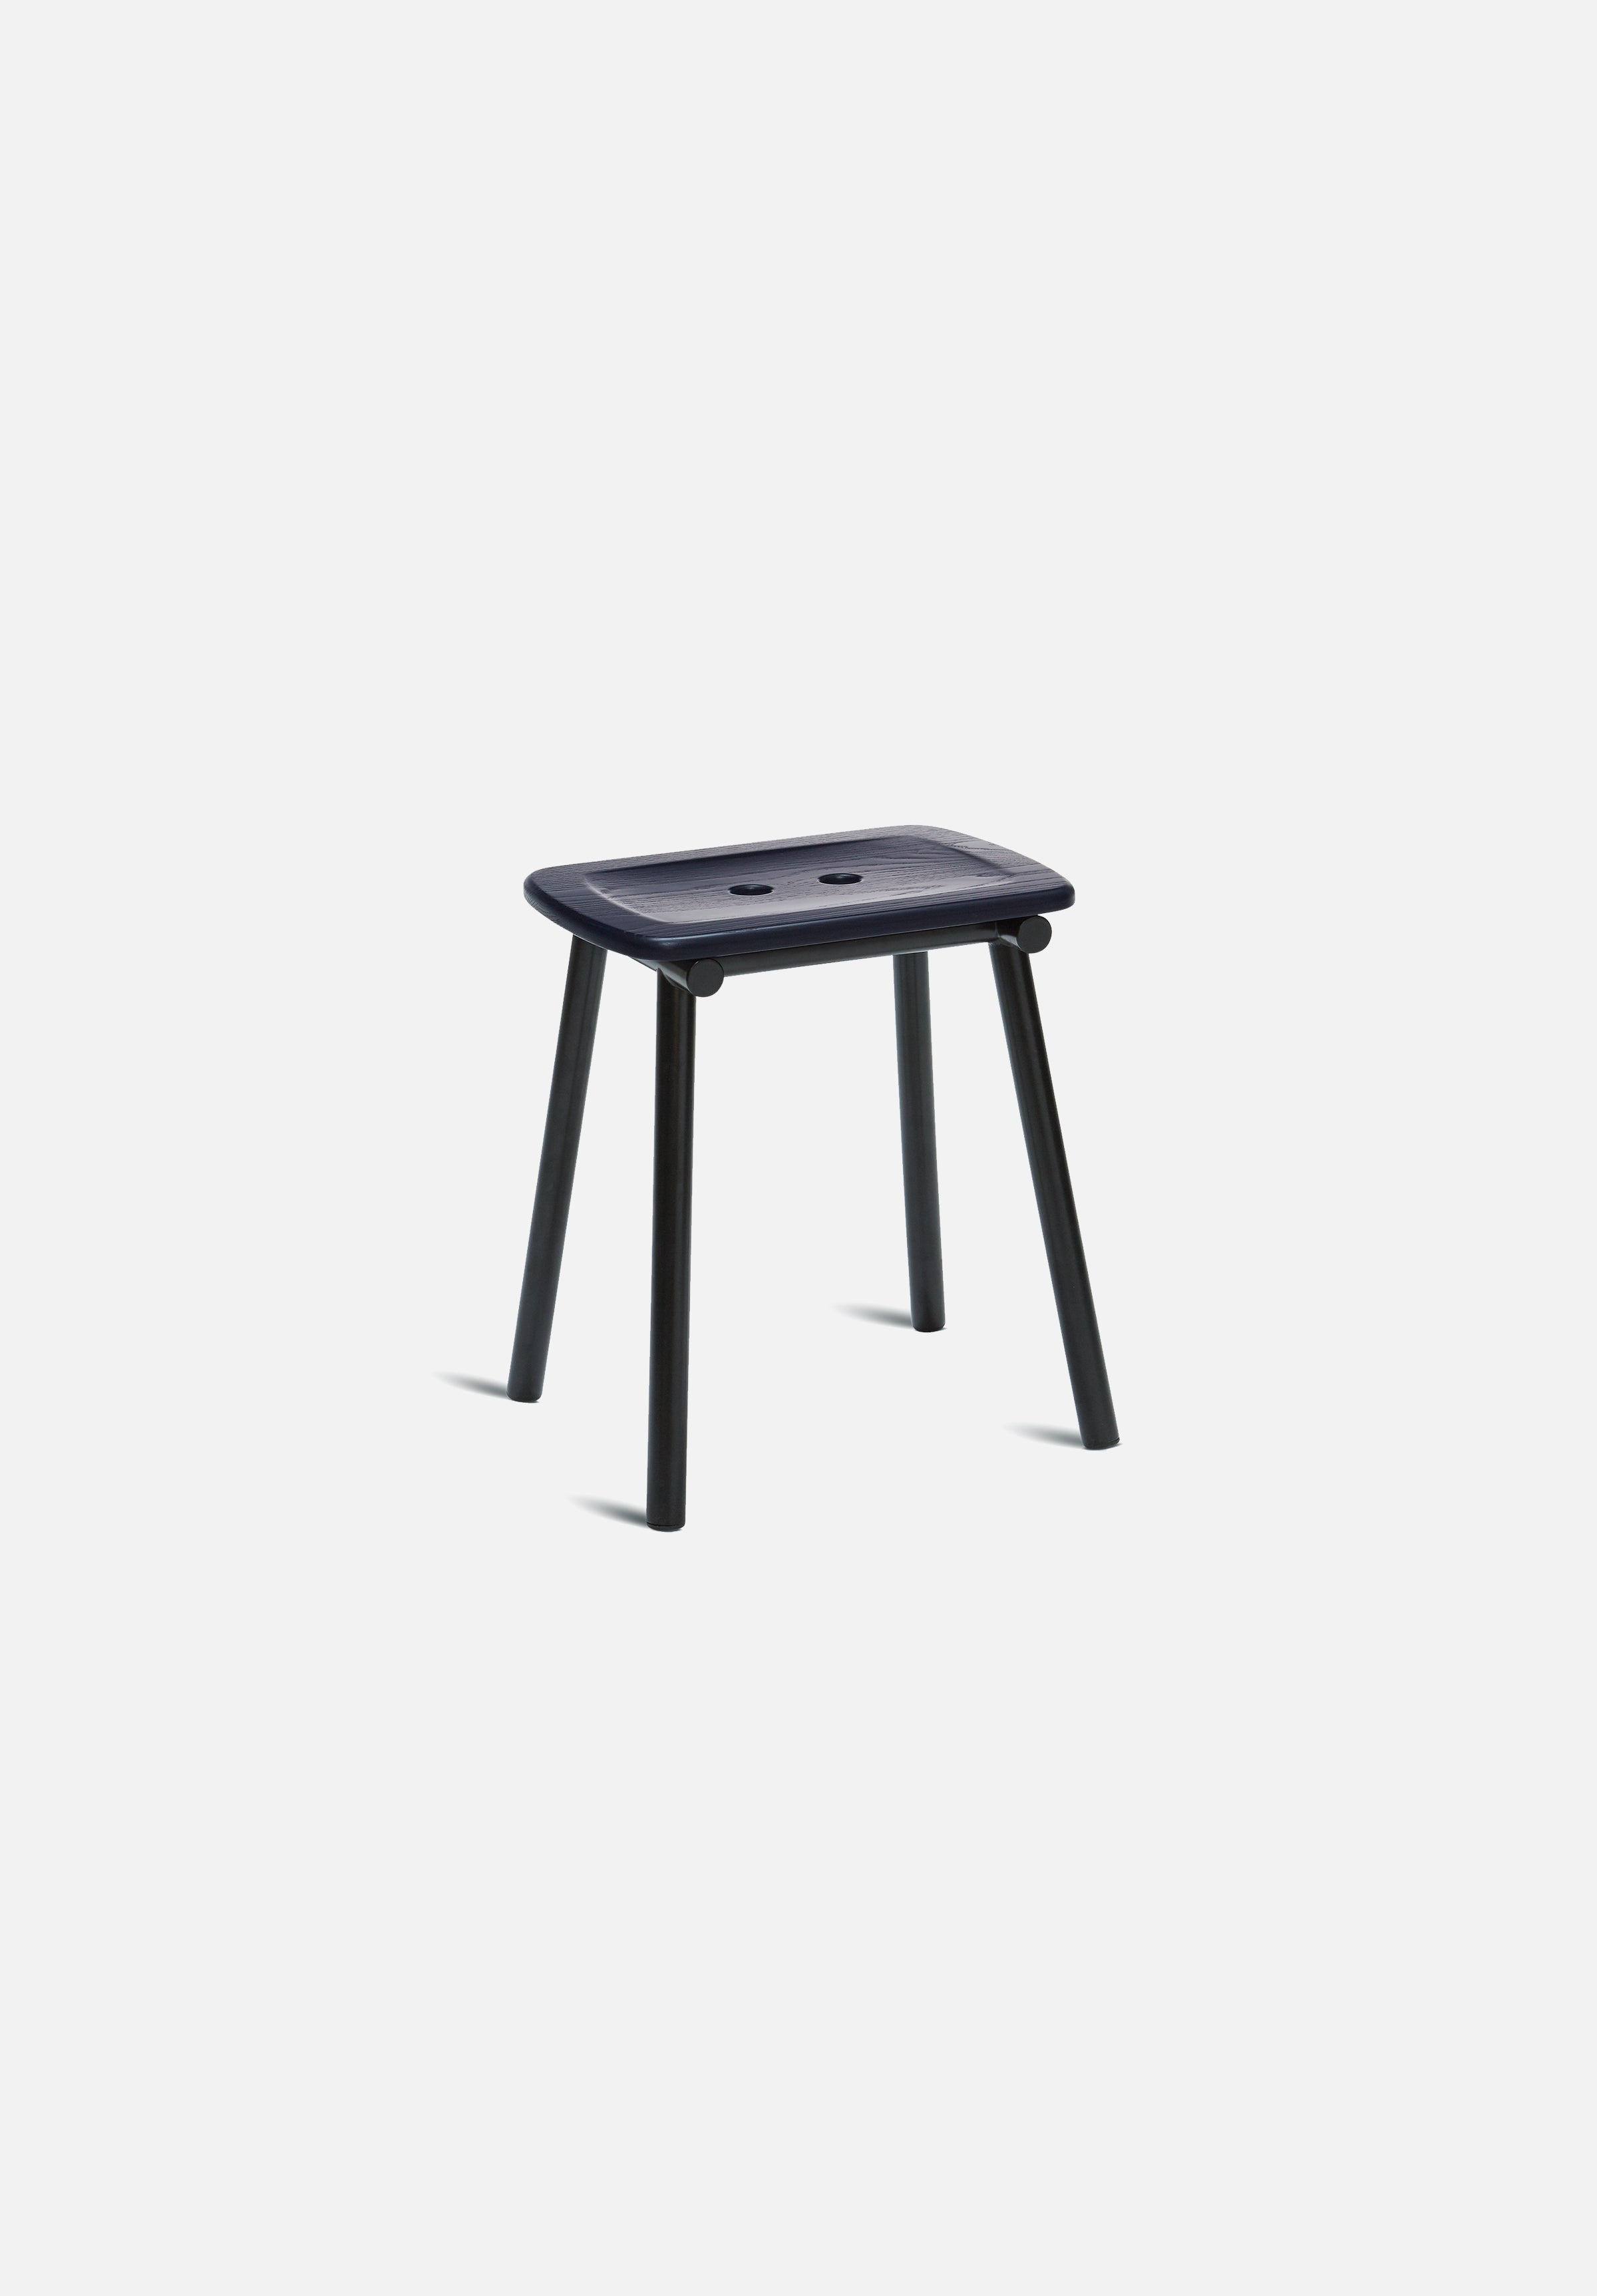 Tubby Stool-Faye Toogood-Please Wait to be Seated-Painted Navy Ash-Average